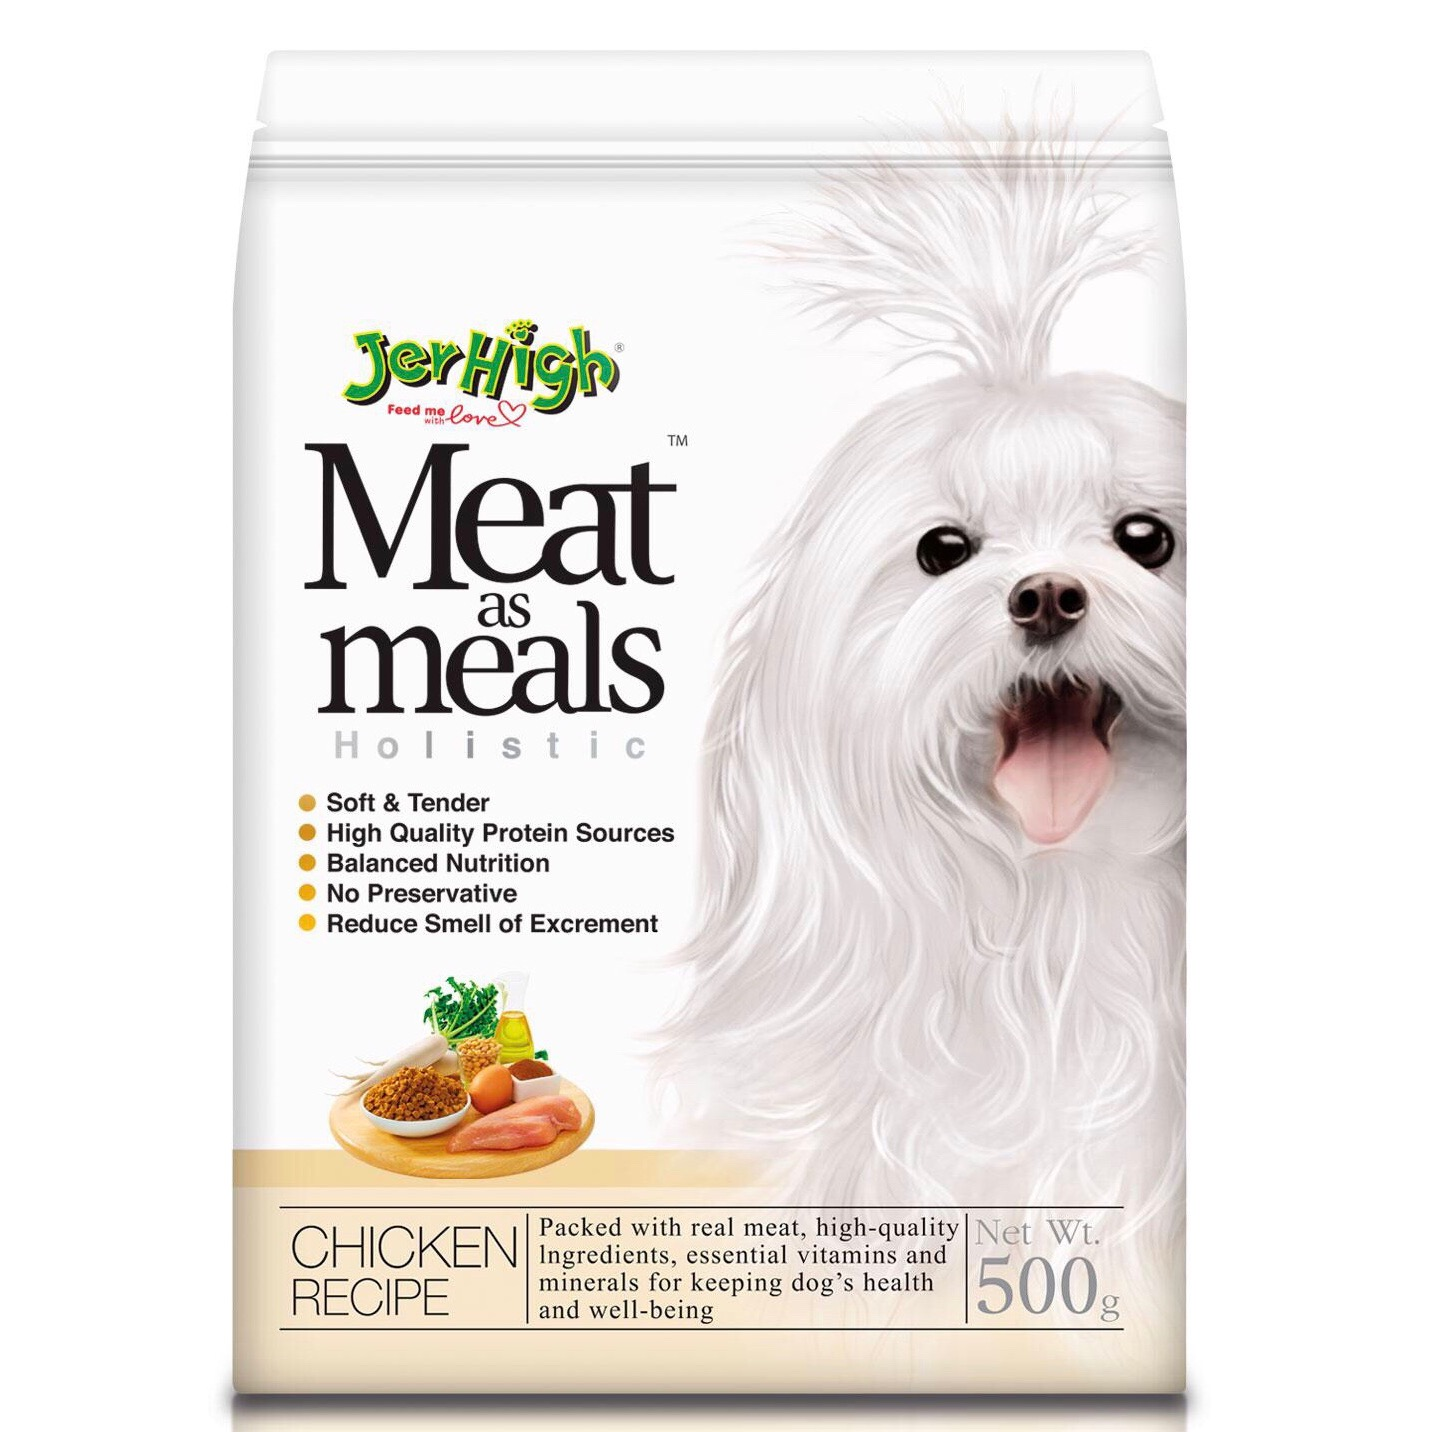 Hạt Mềm JerHigh Meat as Meals Holistic [Gà] 500g